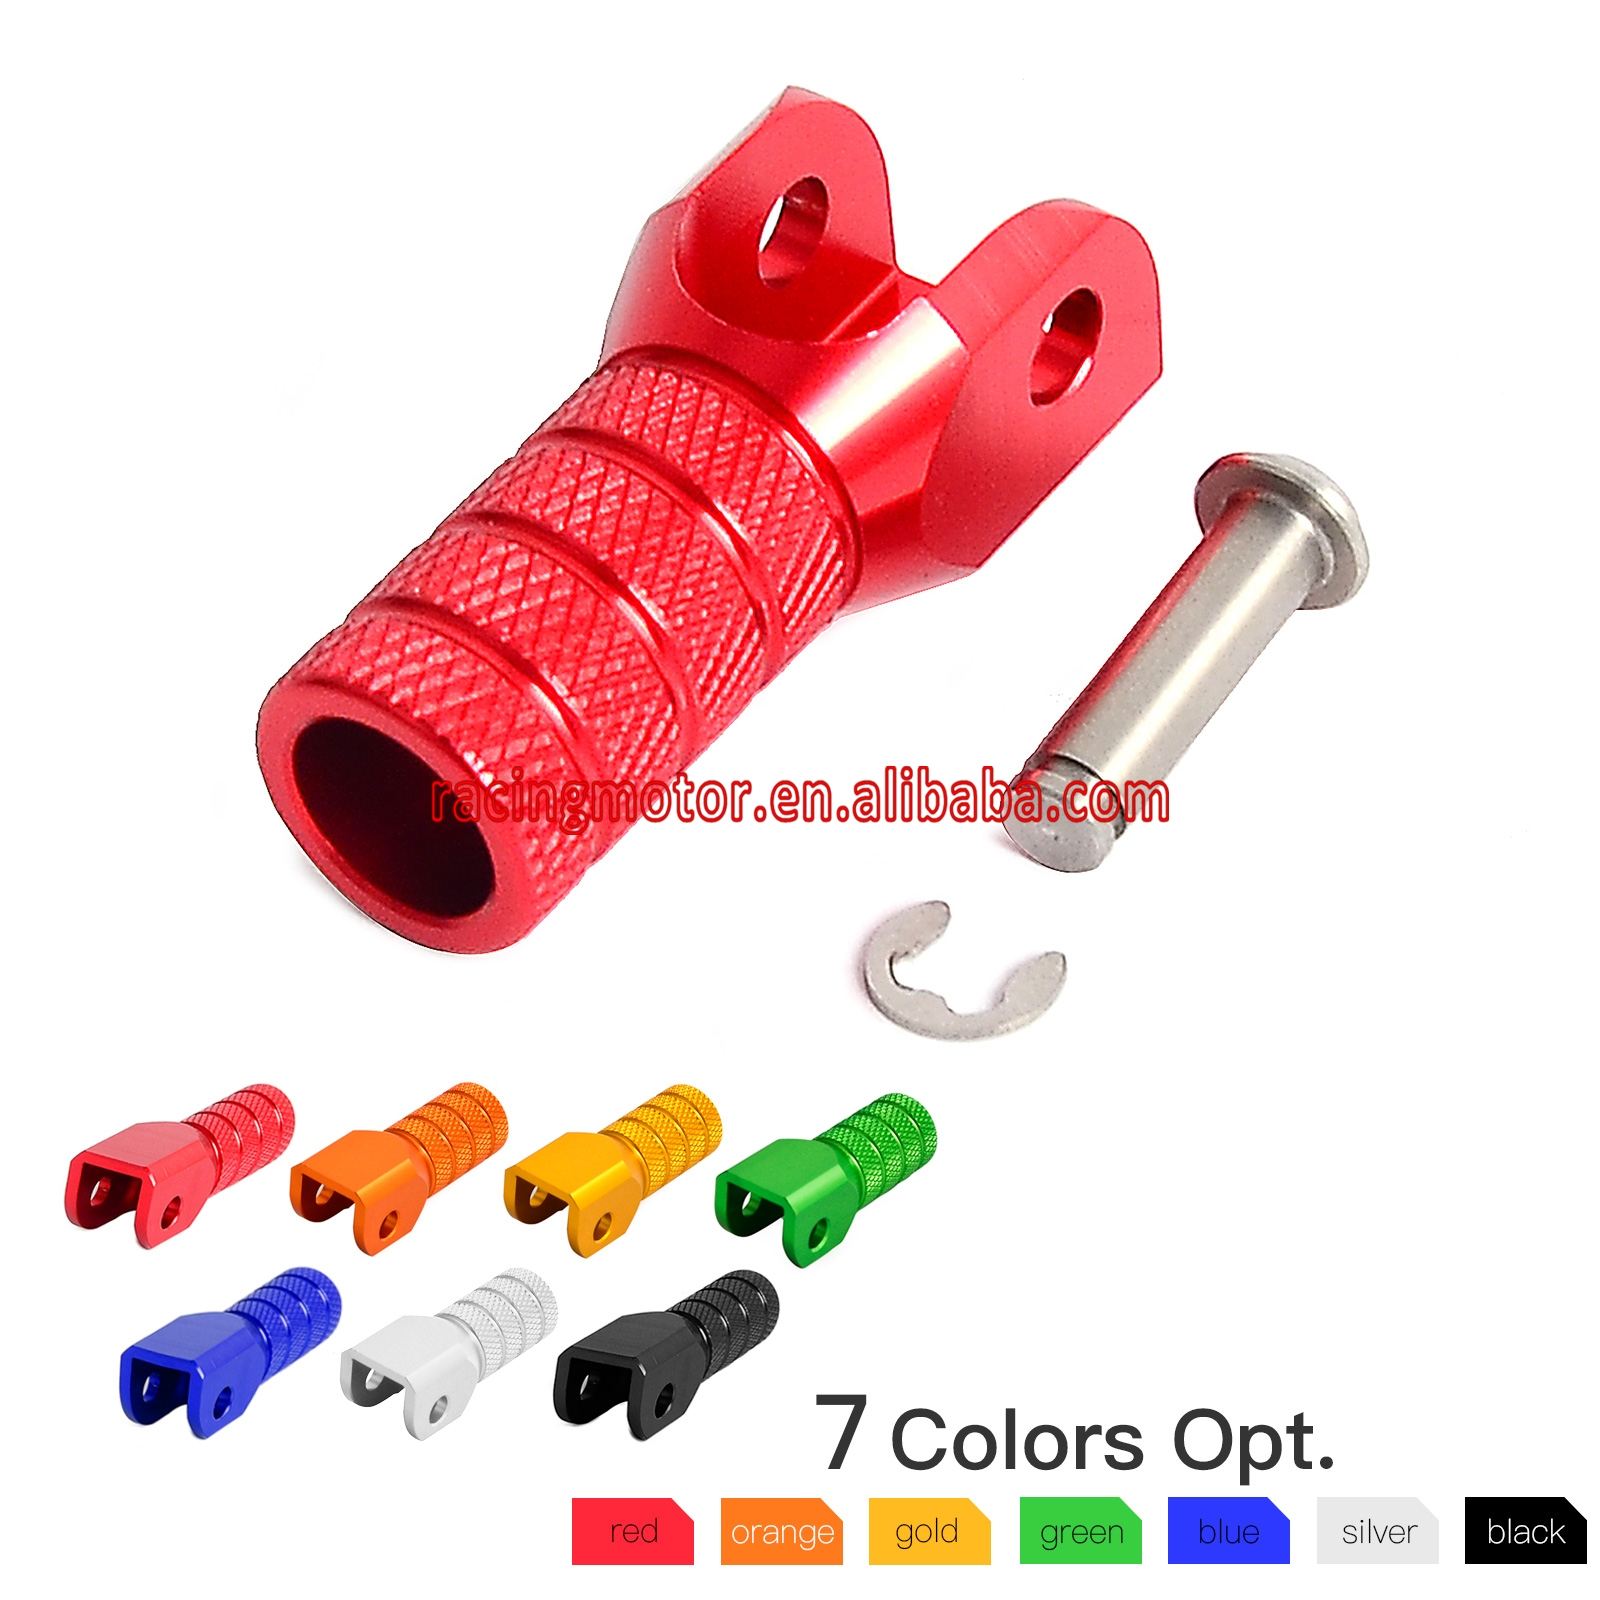 Gear Shift Lever Tip Toe For Suzuki RM80 RM85 RM125 RM250 RM